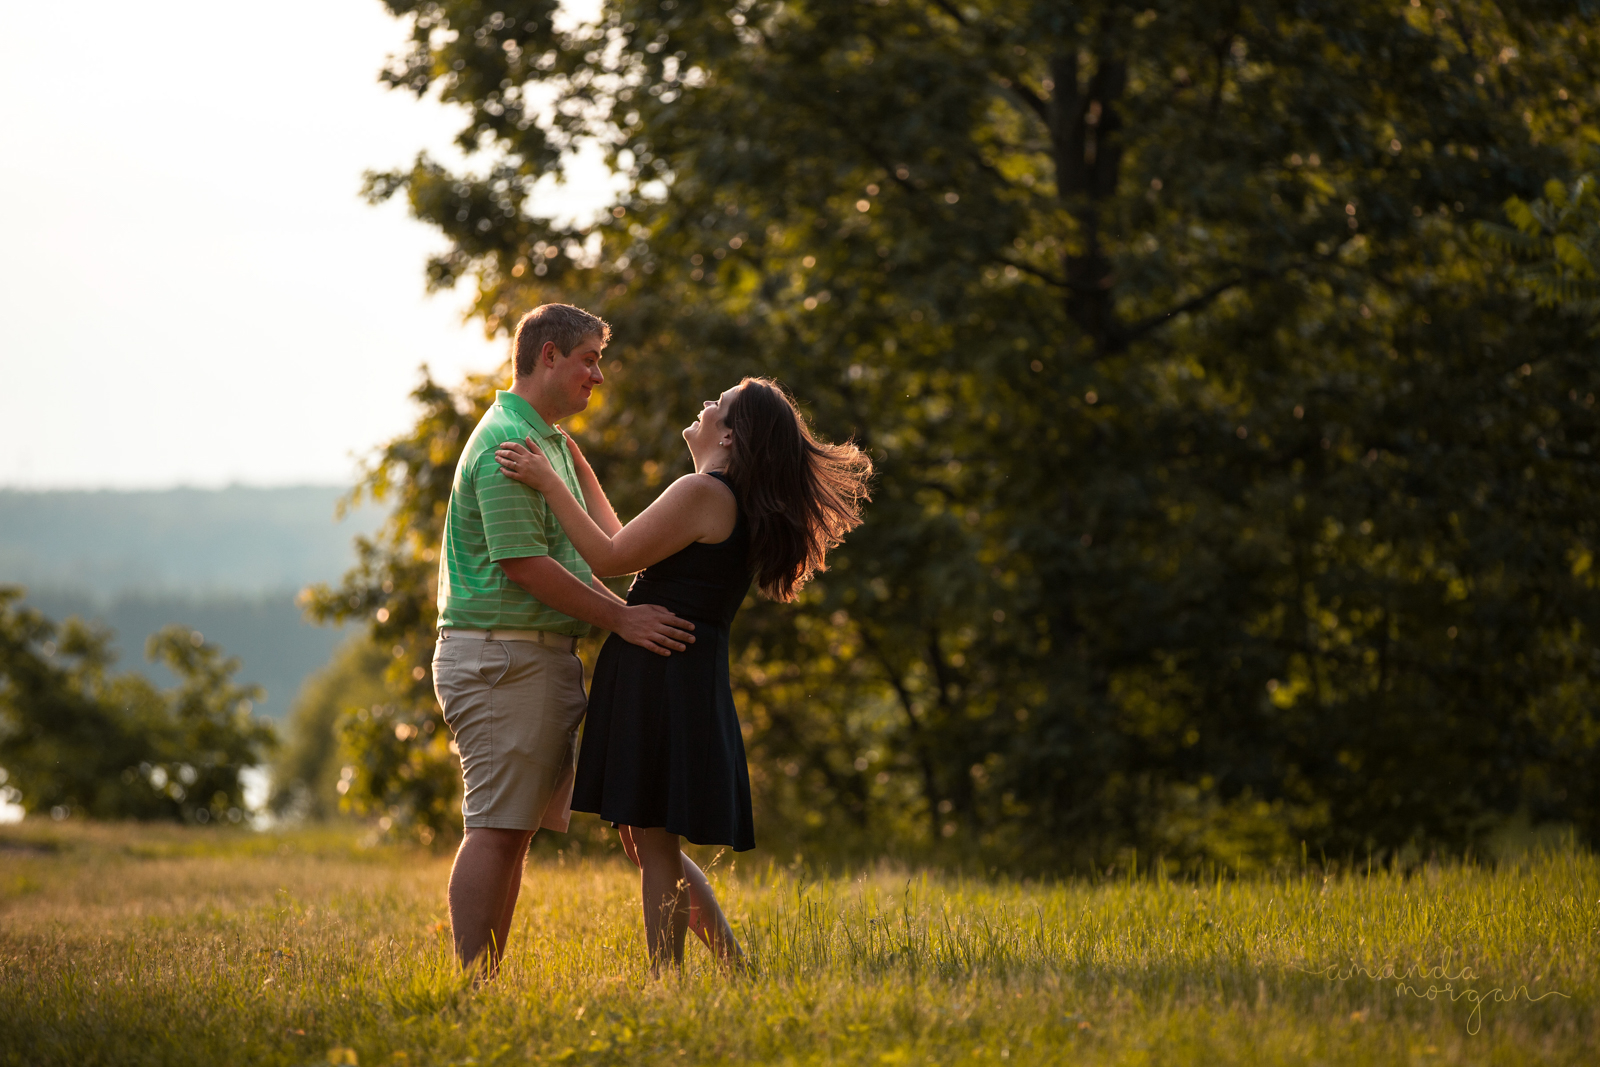 Old-Stone-Church-Engagement-Session-Amanda-Morgan-14.jpg